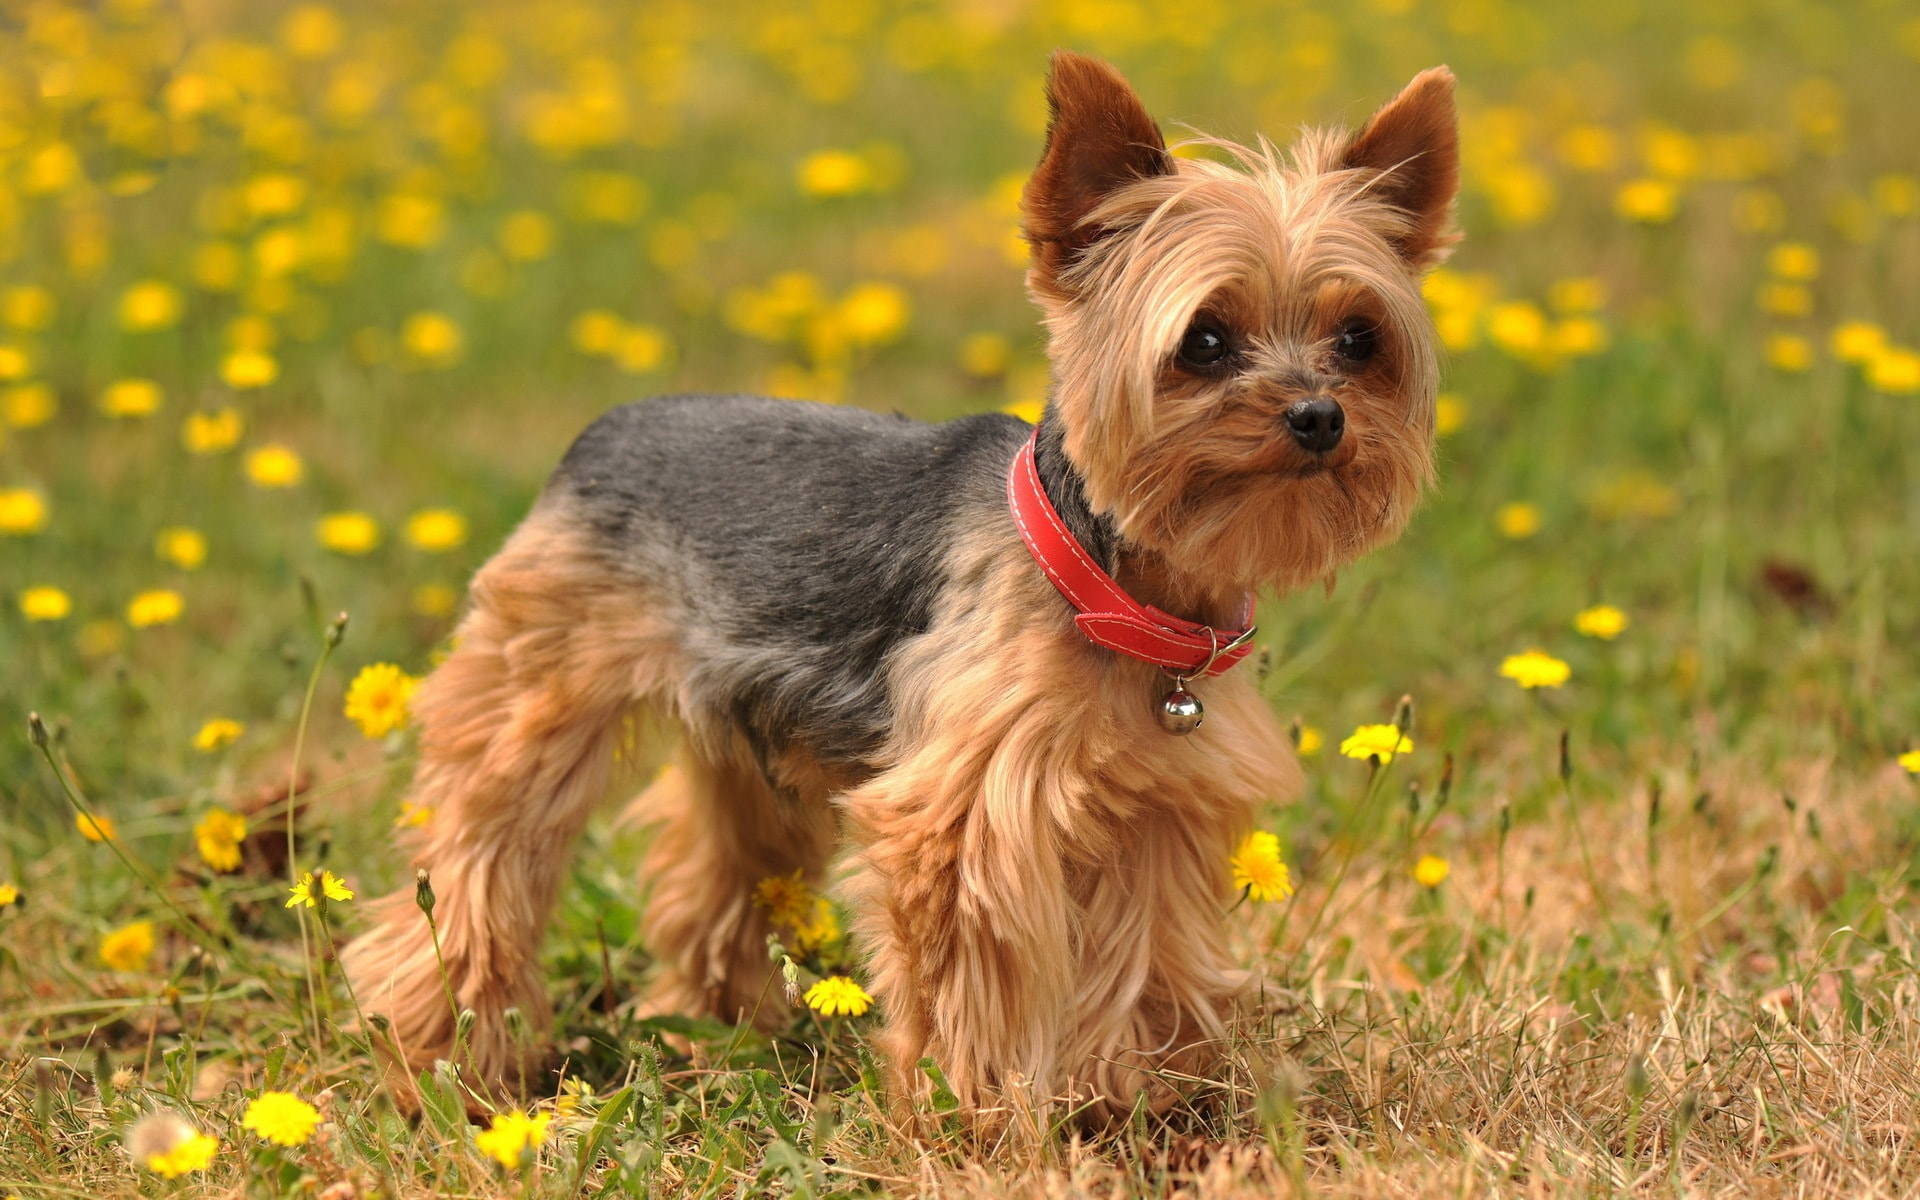 Australian Silky Terrier HQ wallpapers